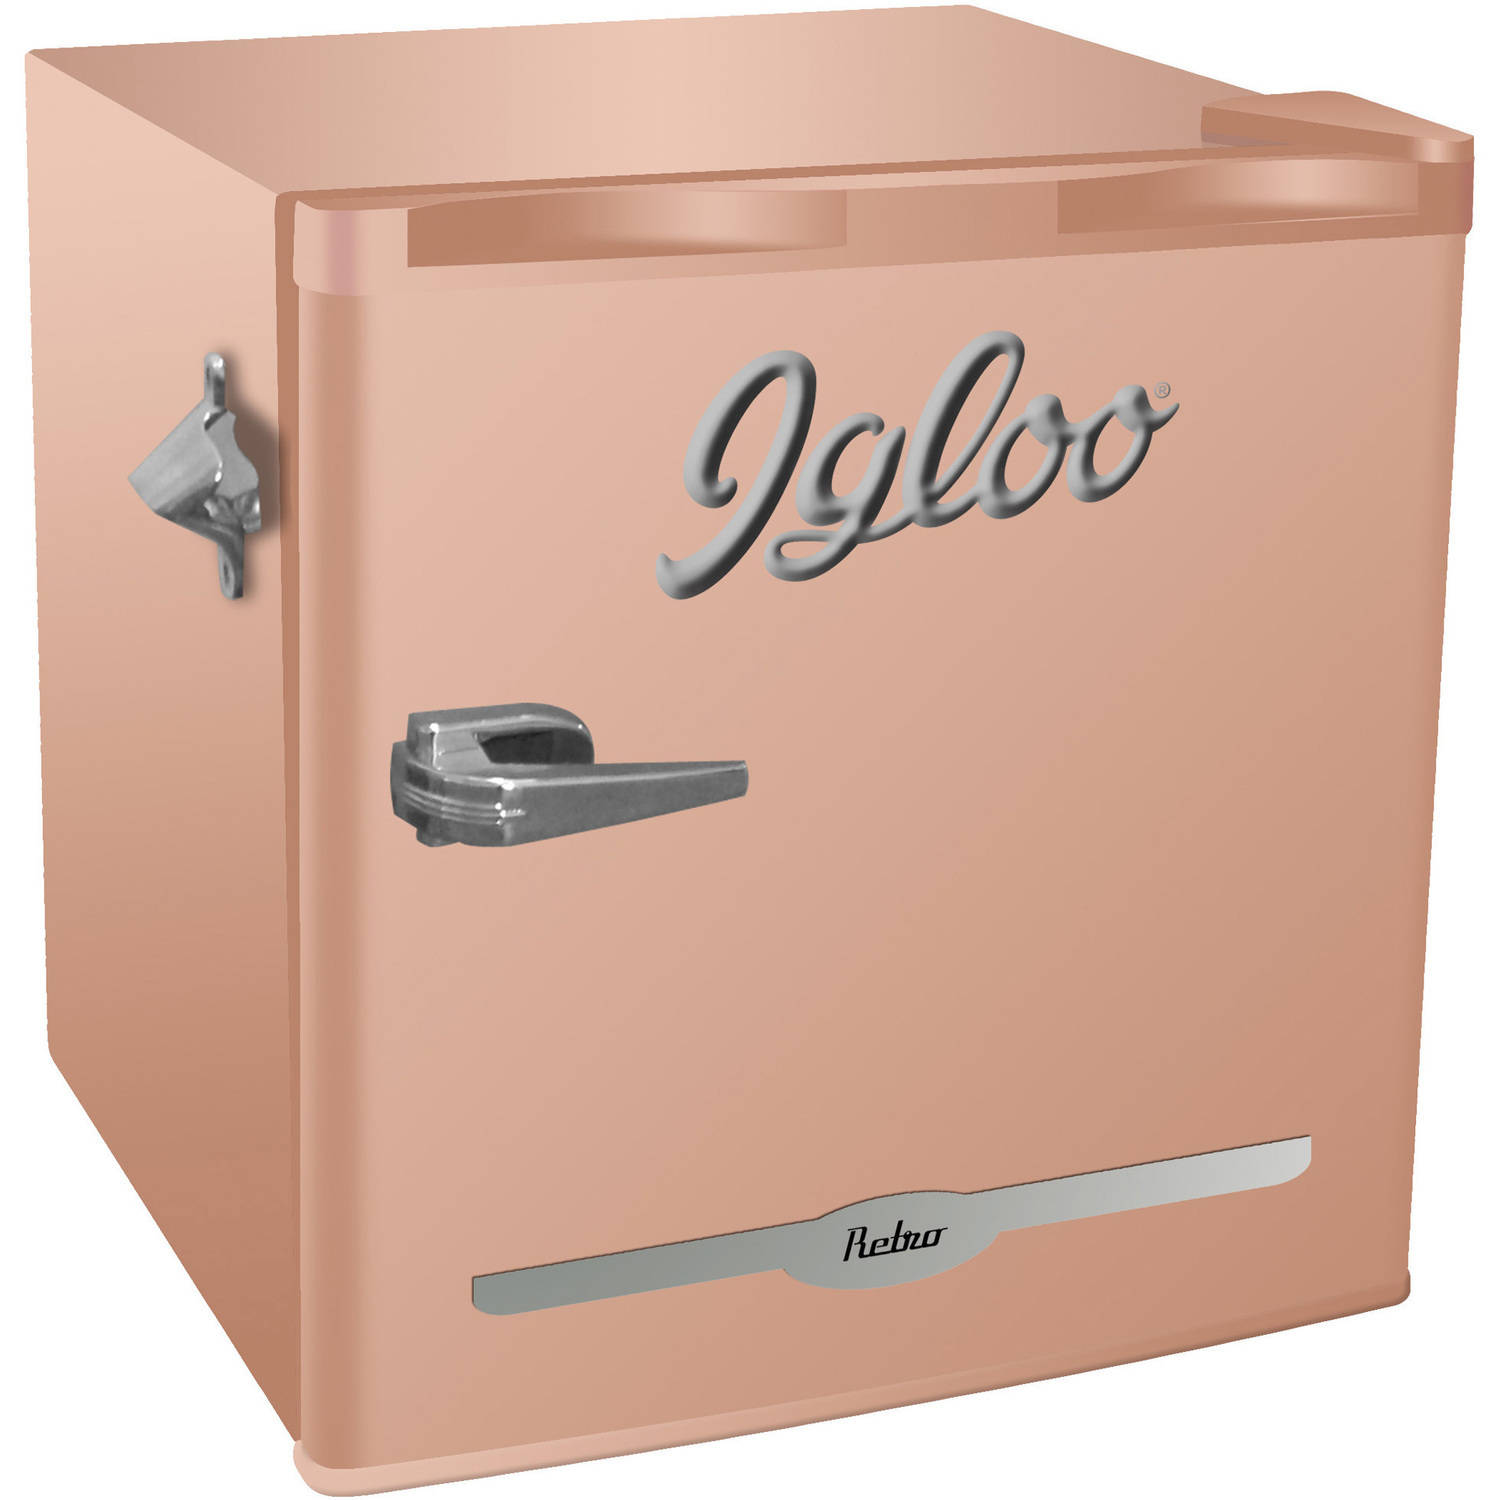 Igloo 1.6 Cu Ft Retro Bar Fridge With Side Bottle Opener, Multiple Colors